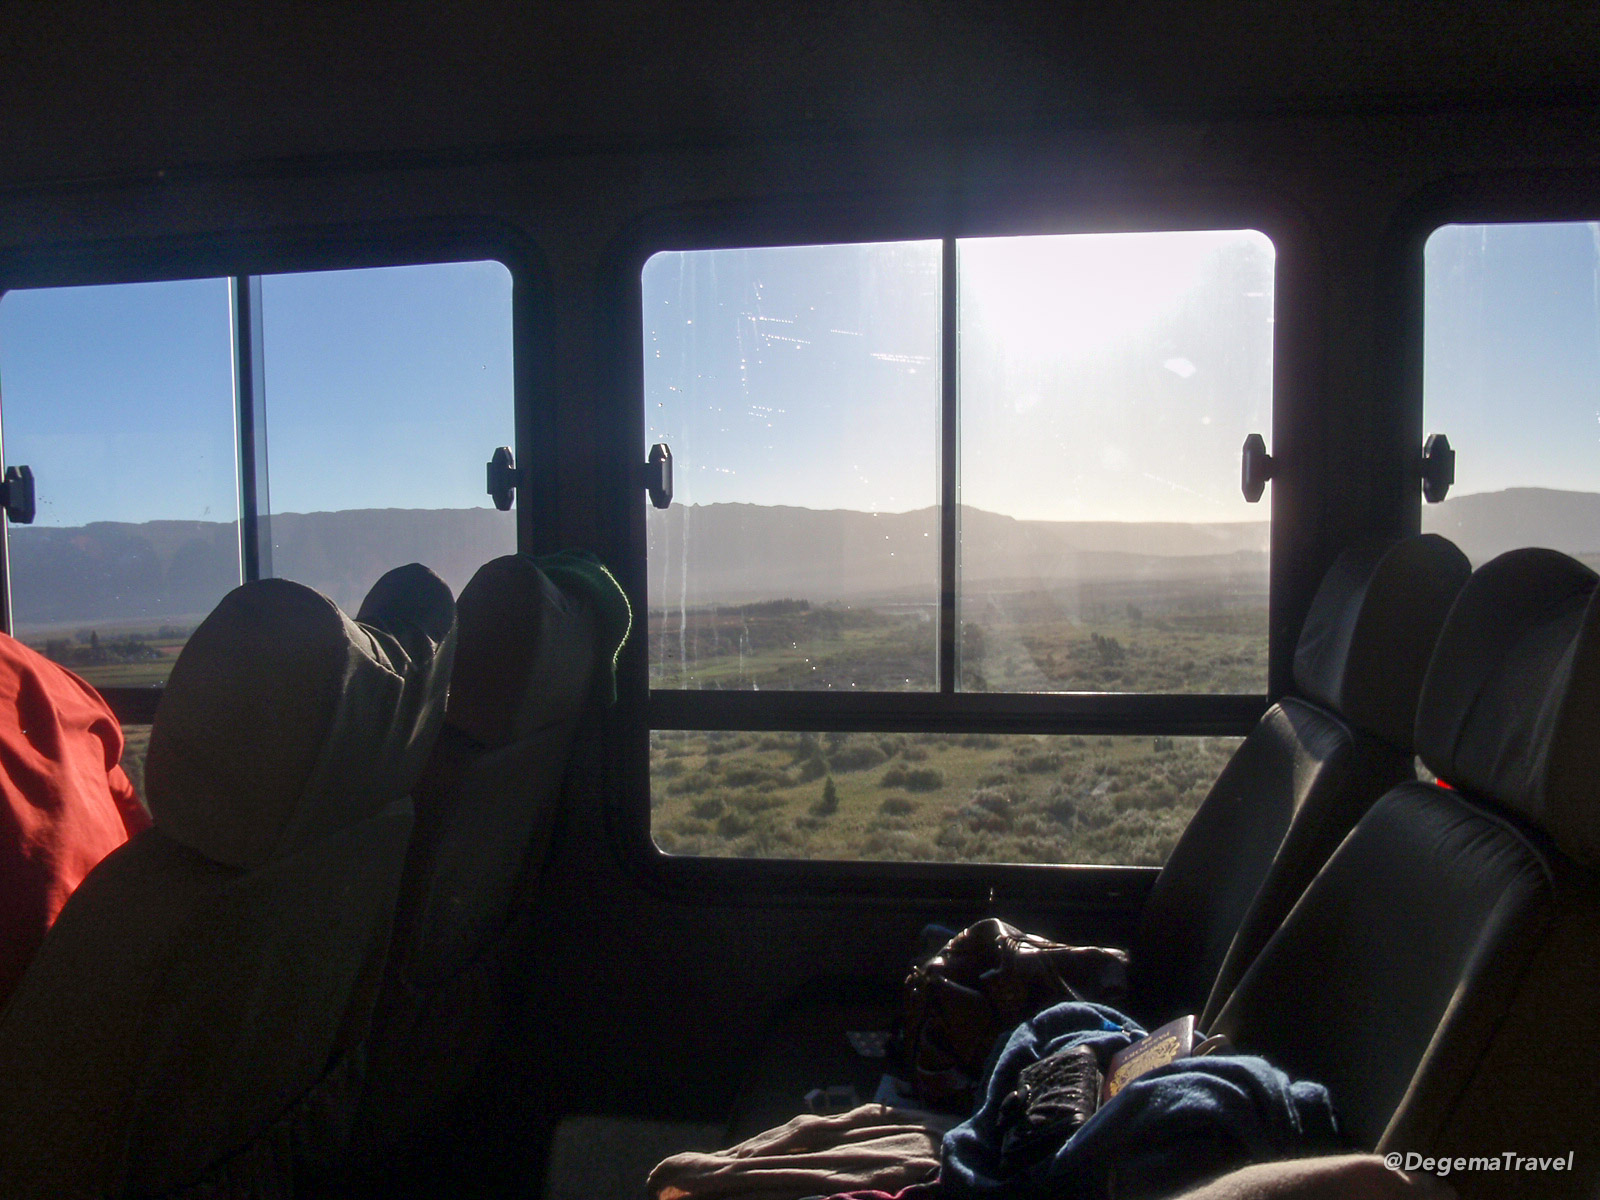 The view from the bus, driving through South Africa